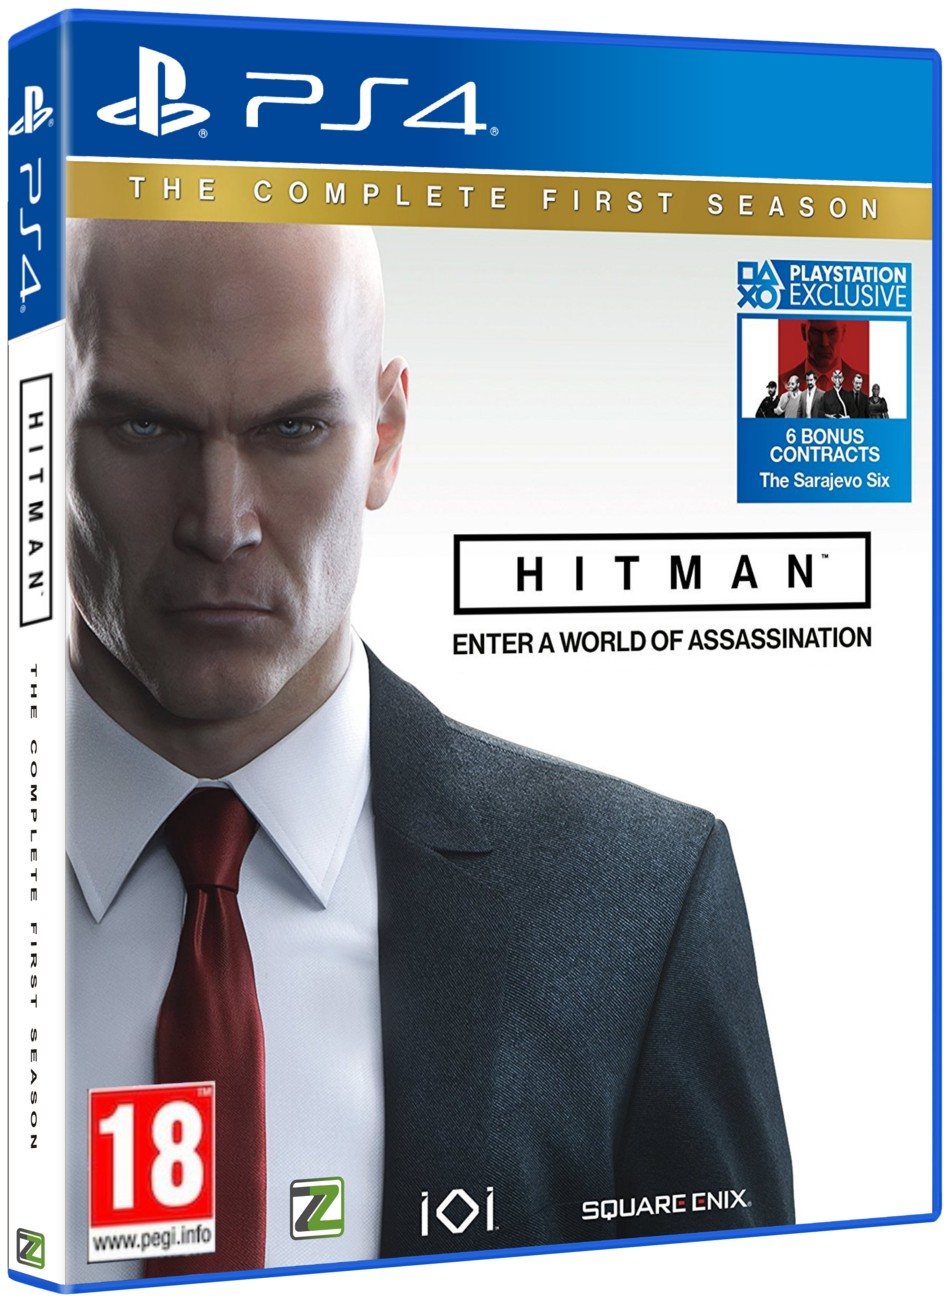 HITMAN THE COMPLETE FIRST SEASON - PS4